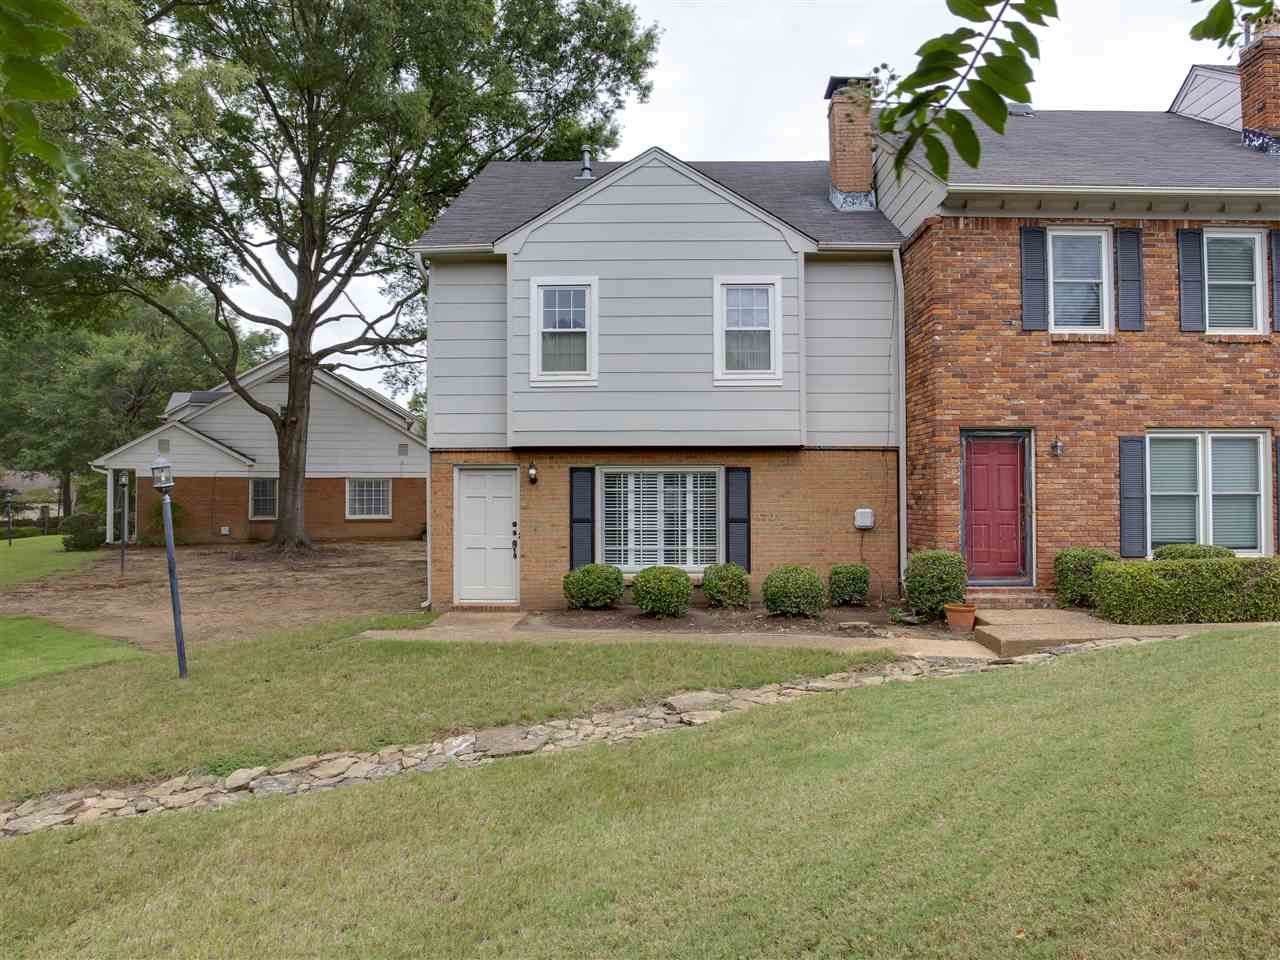 6971 Fords Station, Germantown, TN 38138